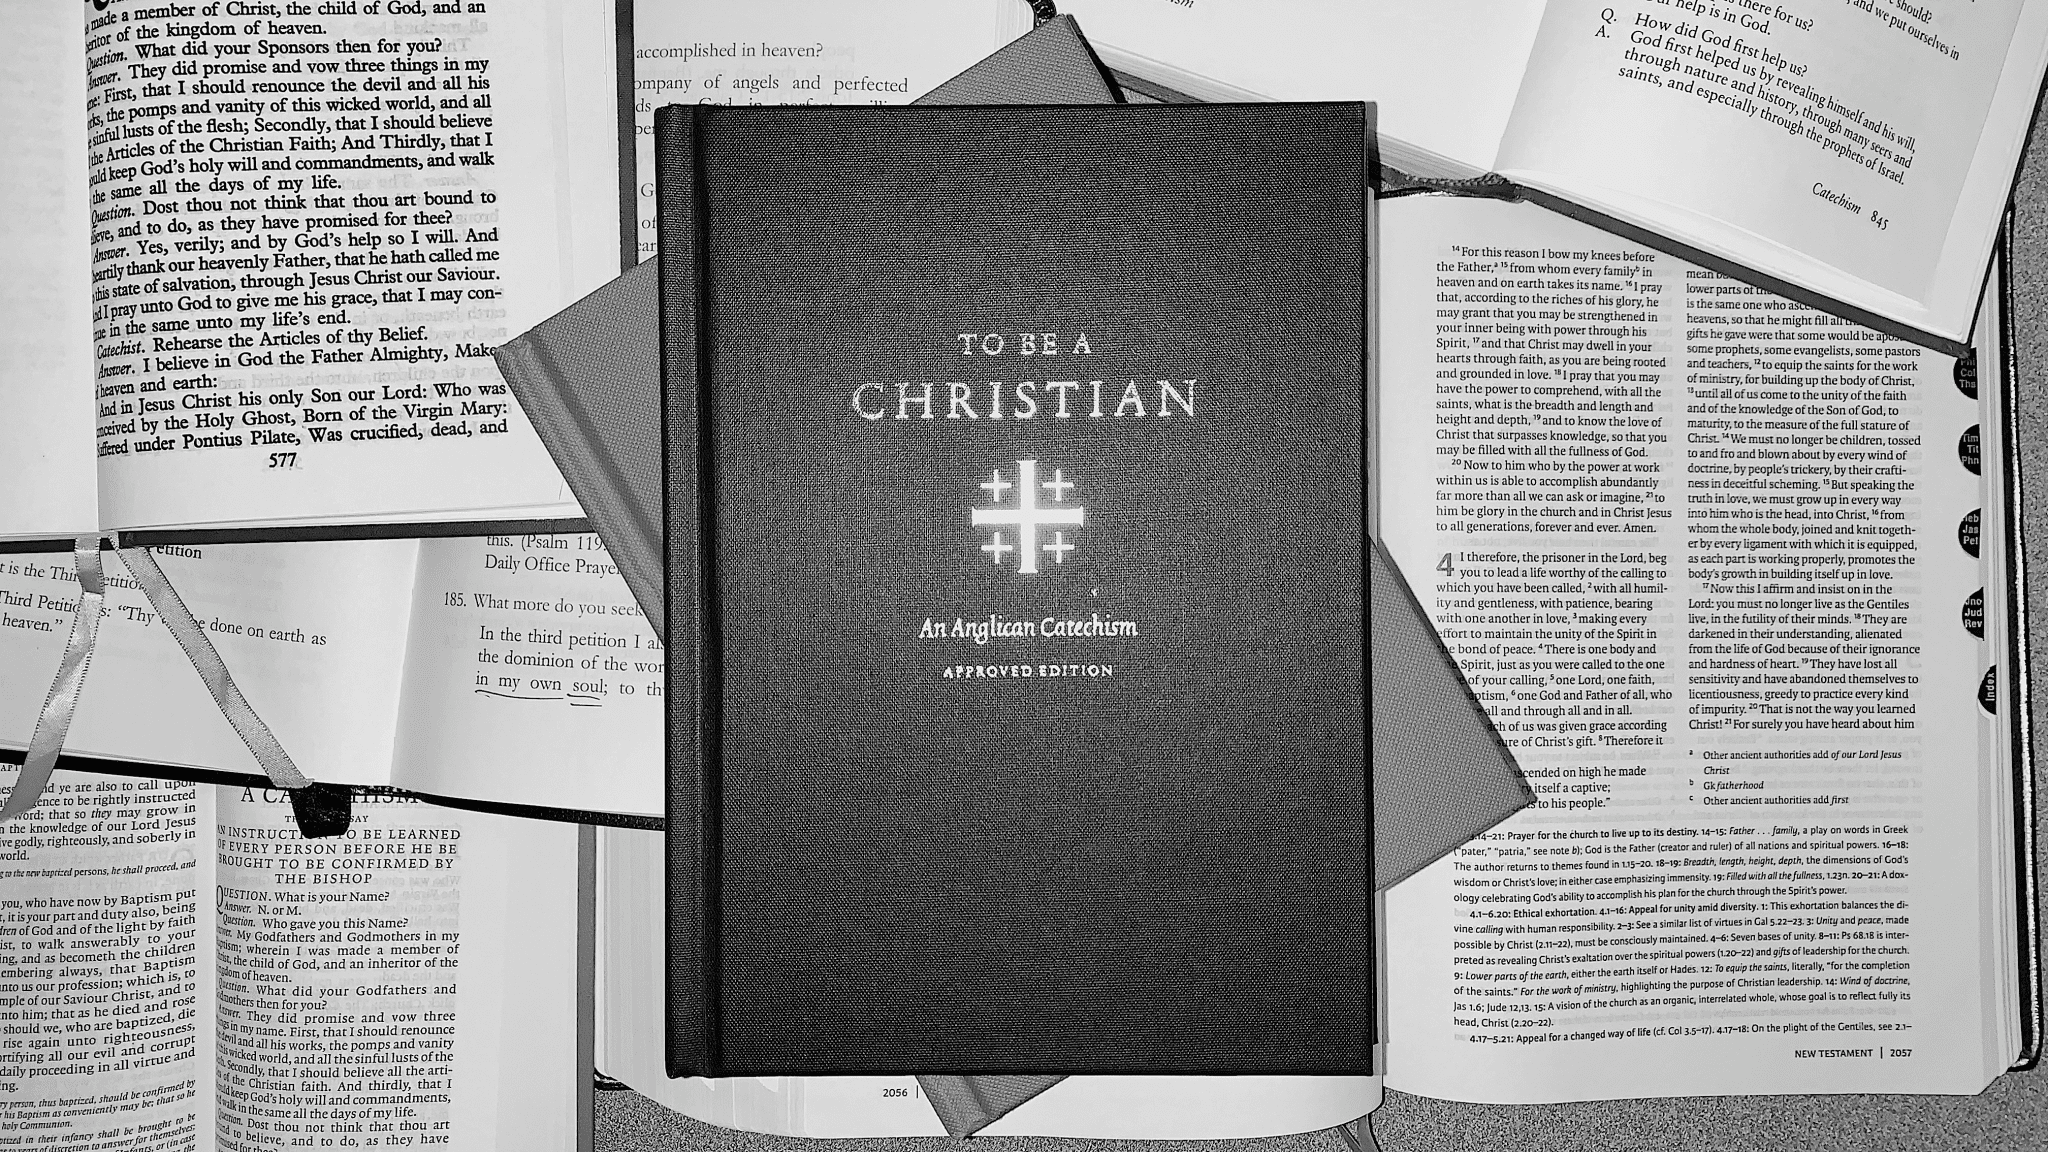 What Do Anglicans Believe about the Sacraments? (Baptism, Holy Communion, Confirmation, Ordination, Marriage, Absolution, Anointing of the Sick)